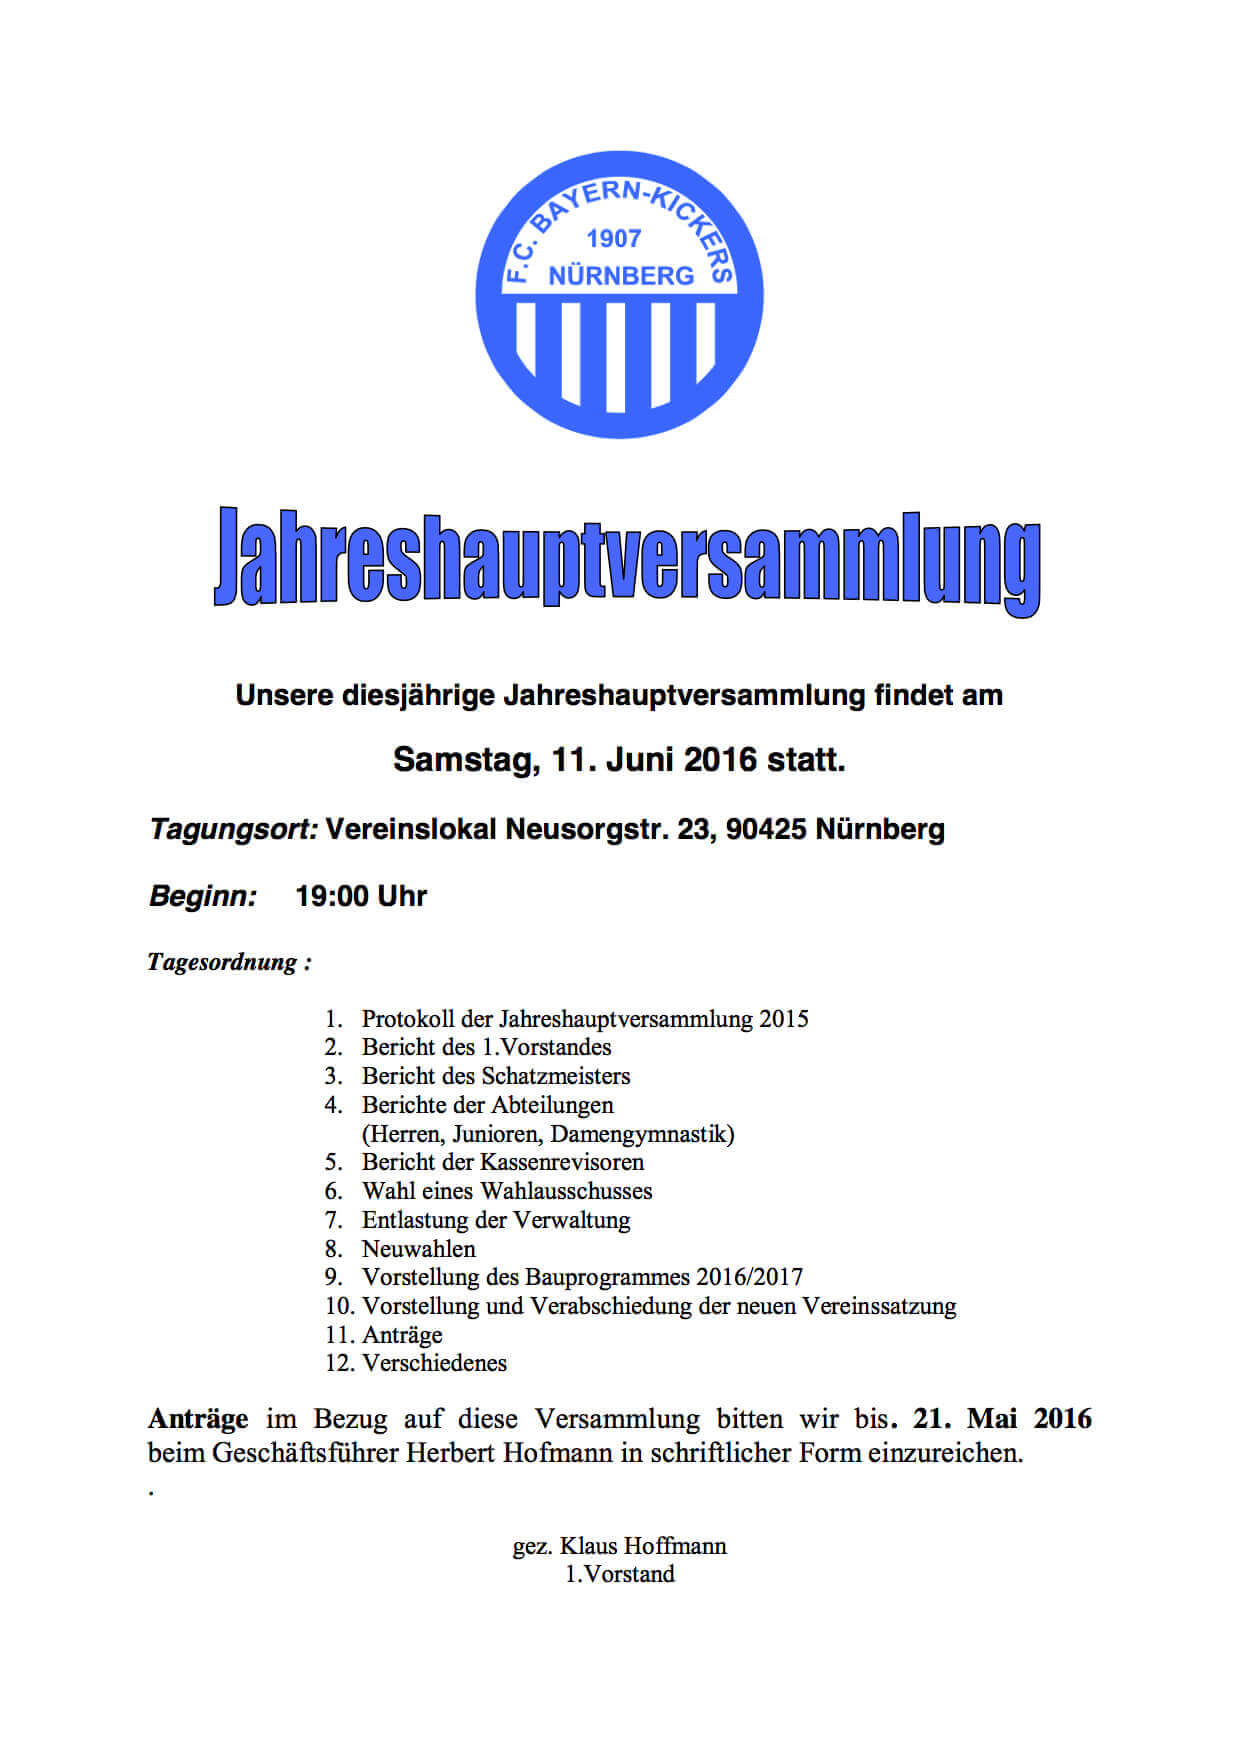 jhv2016